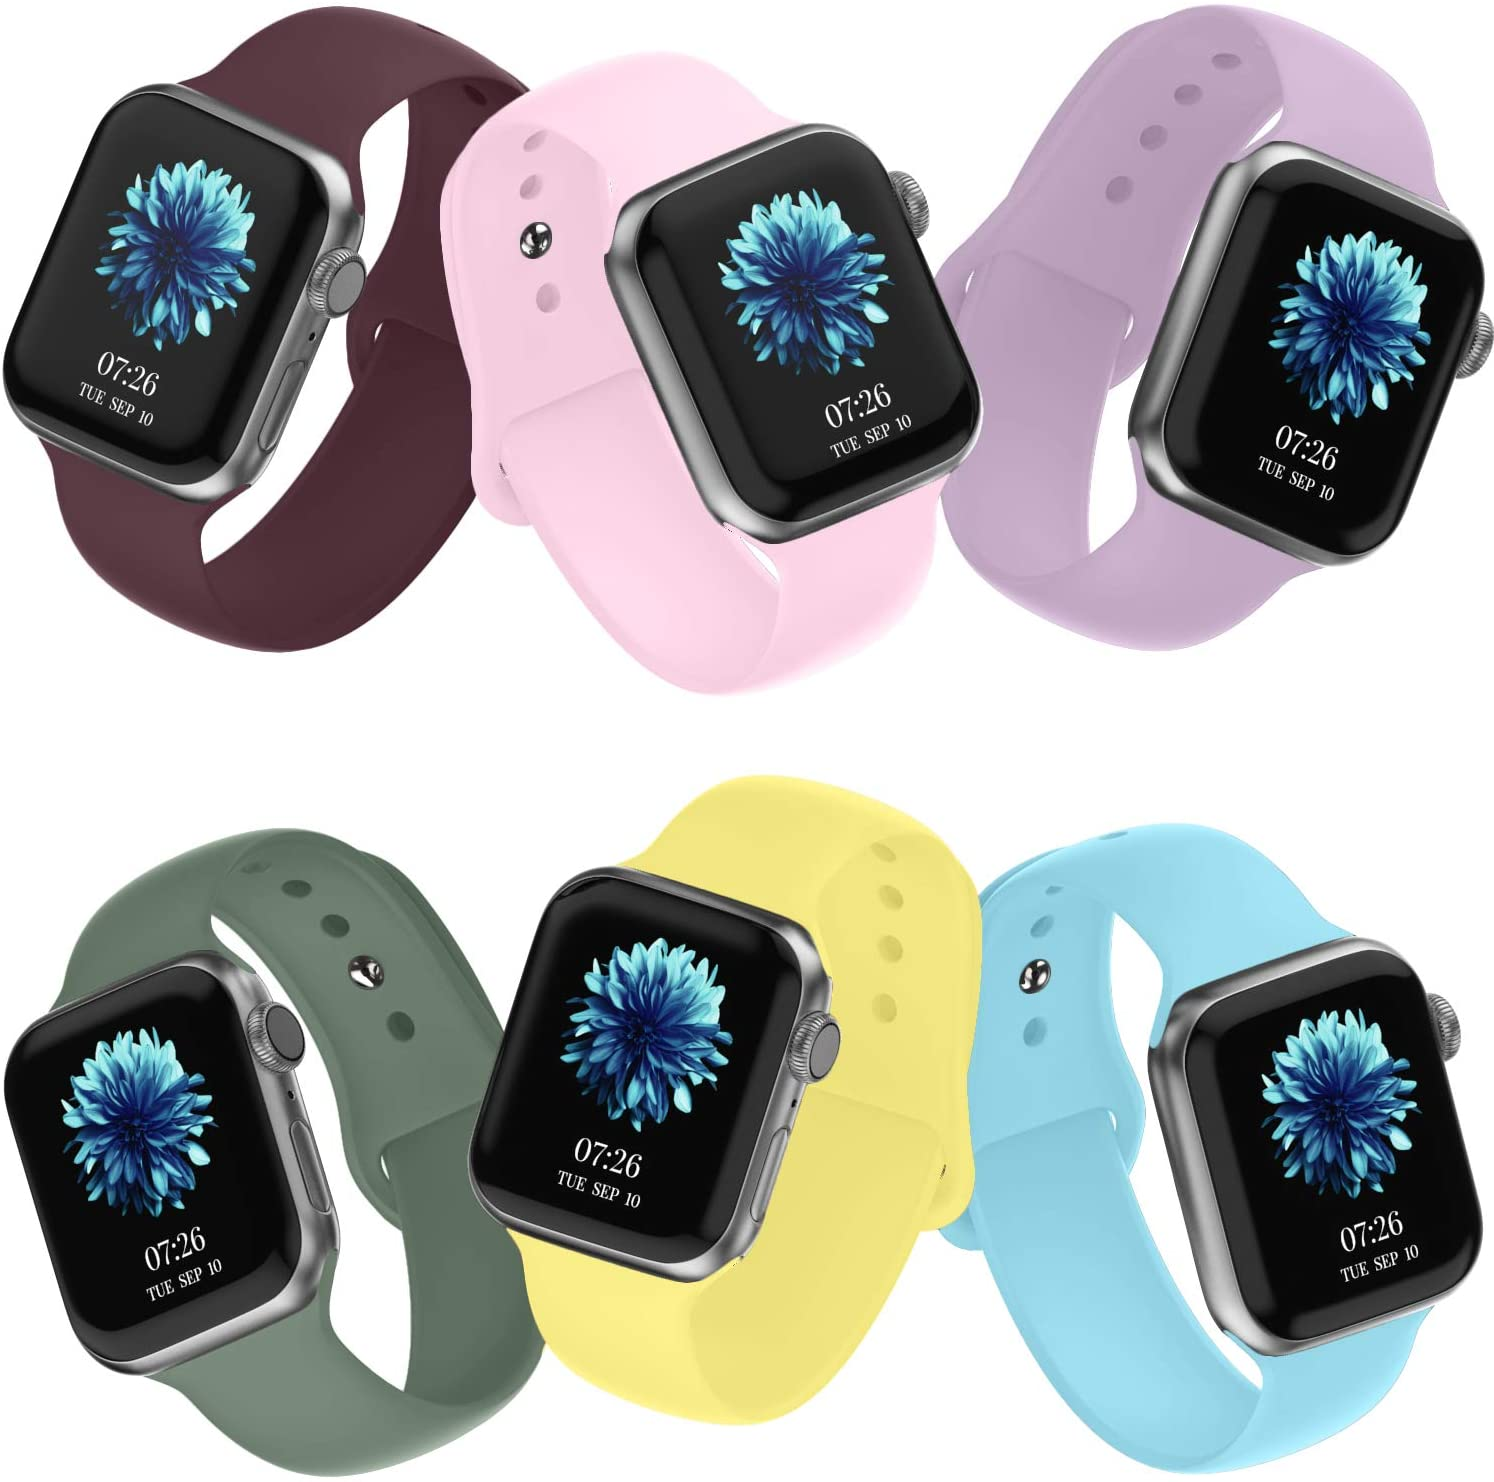 Recoppa 6 Pack Sport Bands Compatible for Apple Watch 44mm 38mm 40mm 42mm for Women Men, Soft Silicon Wristband Replacement Straps for Apple Smart Watch Series 5, 4, 3, 2, 1